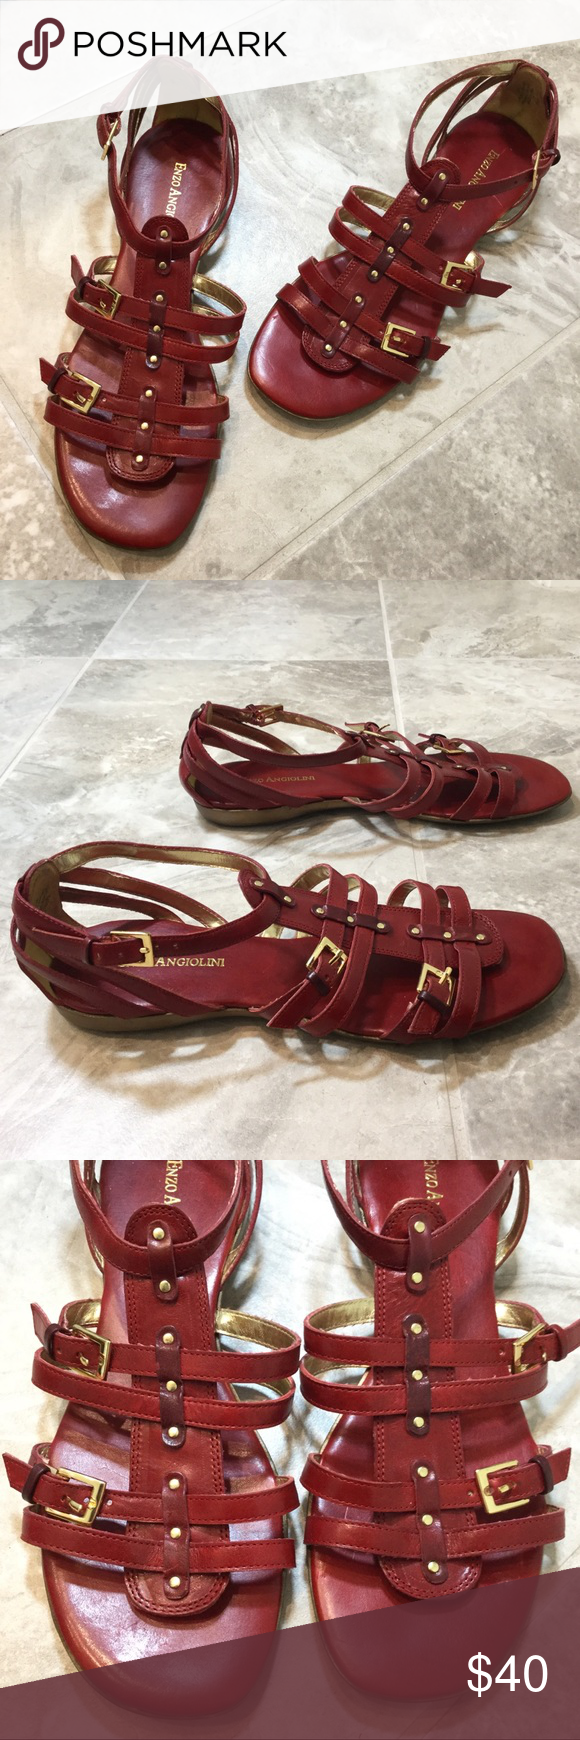 9dca264ca9e Enzo Angiolini Eatells Leather Gladiator Sandals Enzo Angiolini Eatells red  leather flat gladiator sandals with buckles